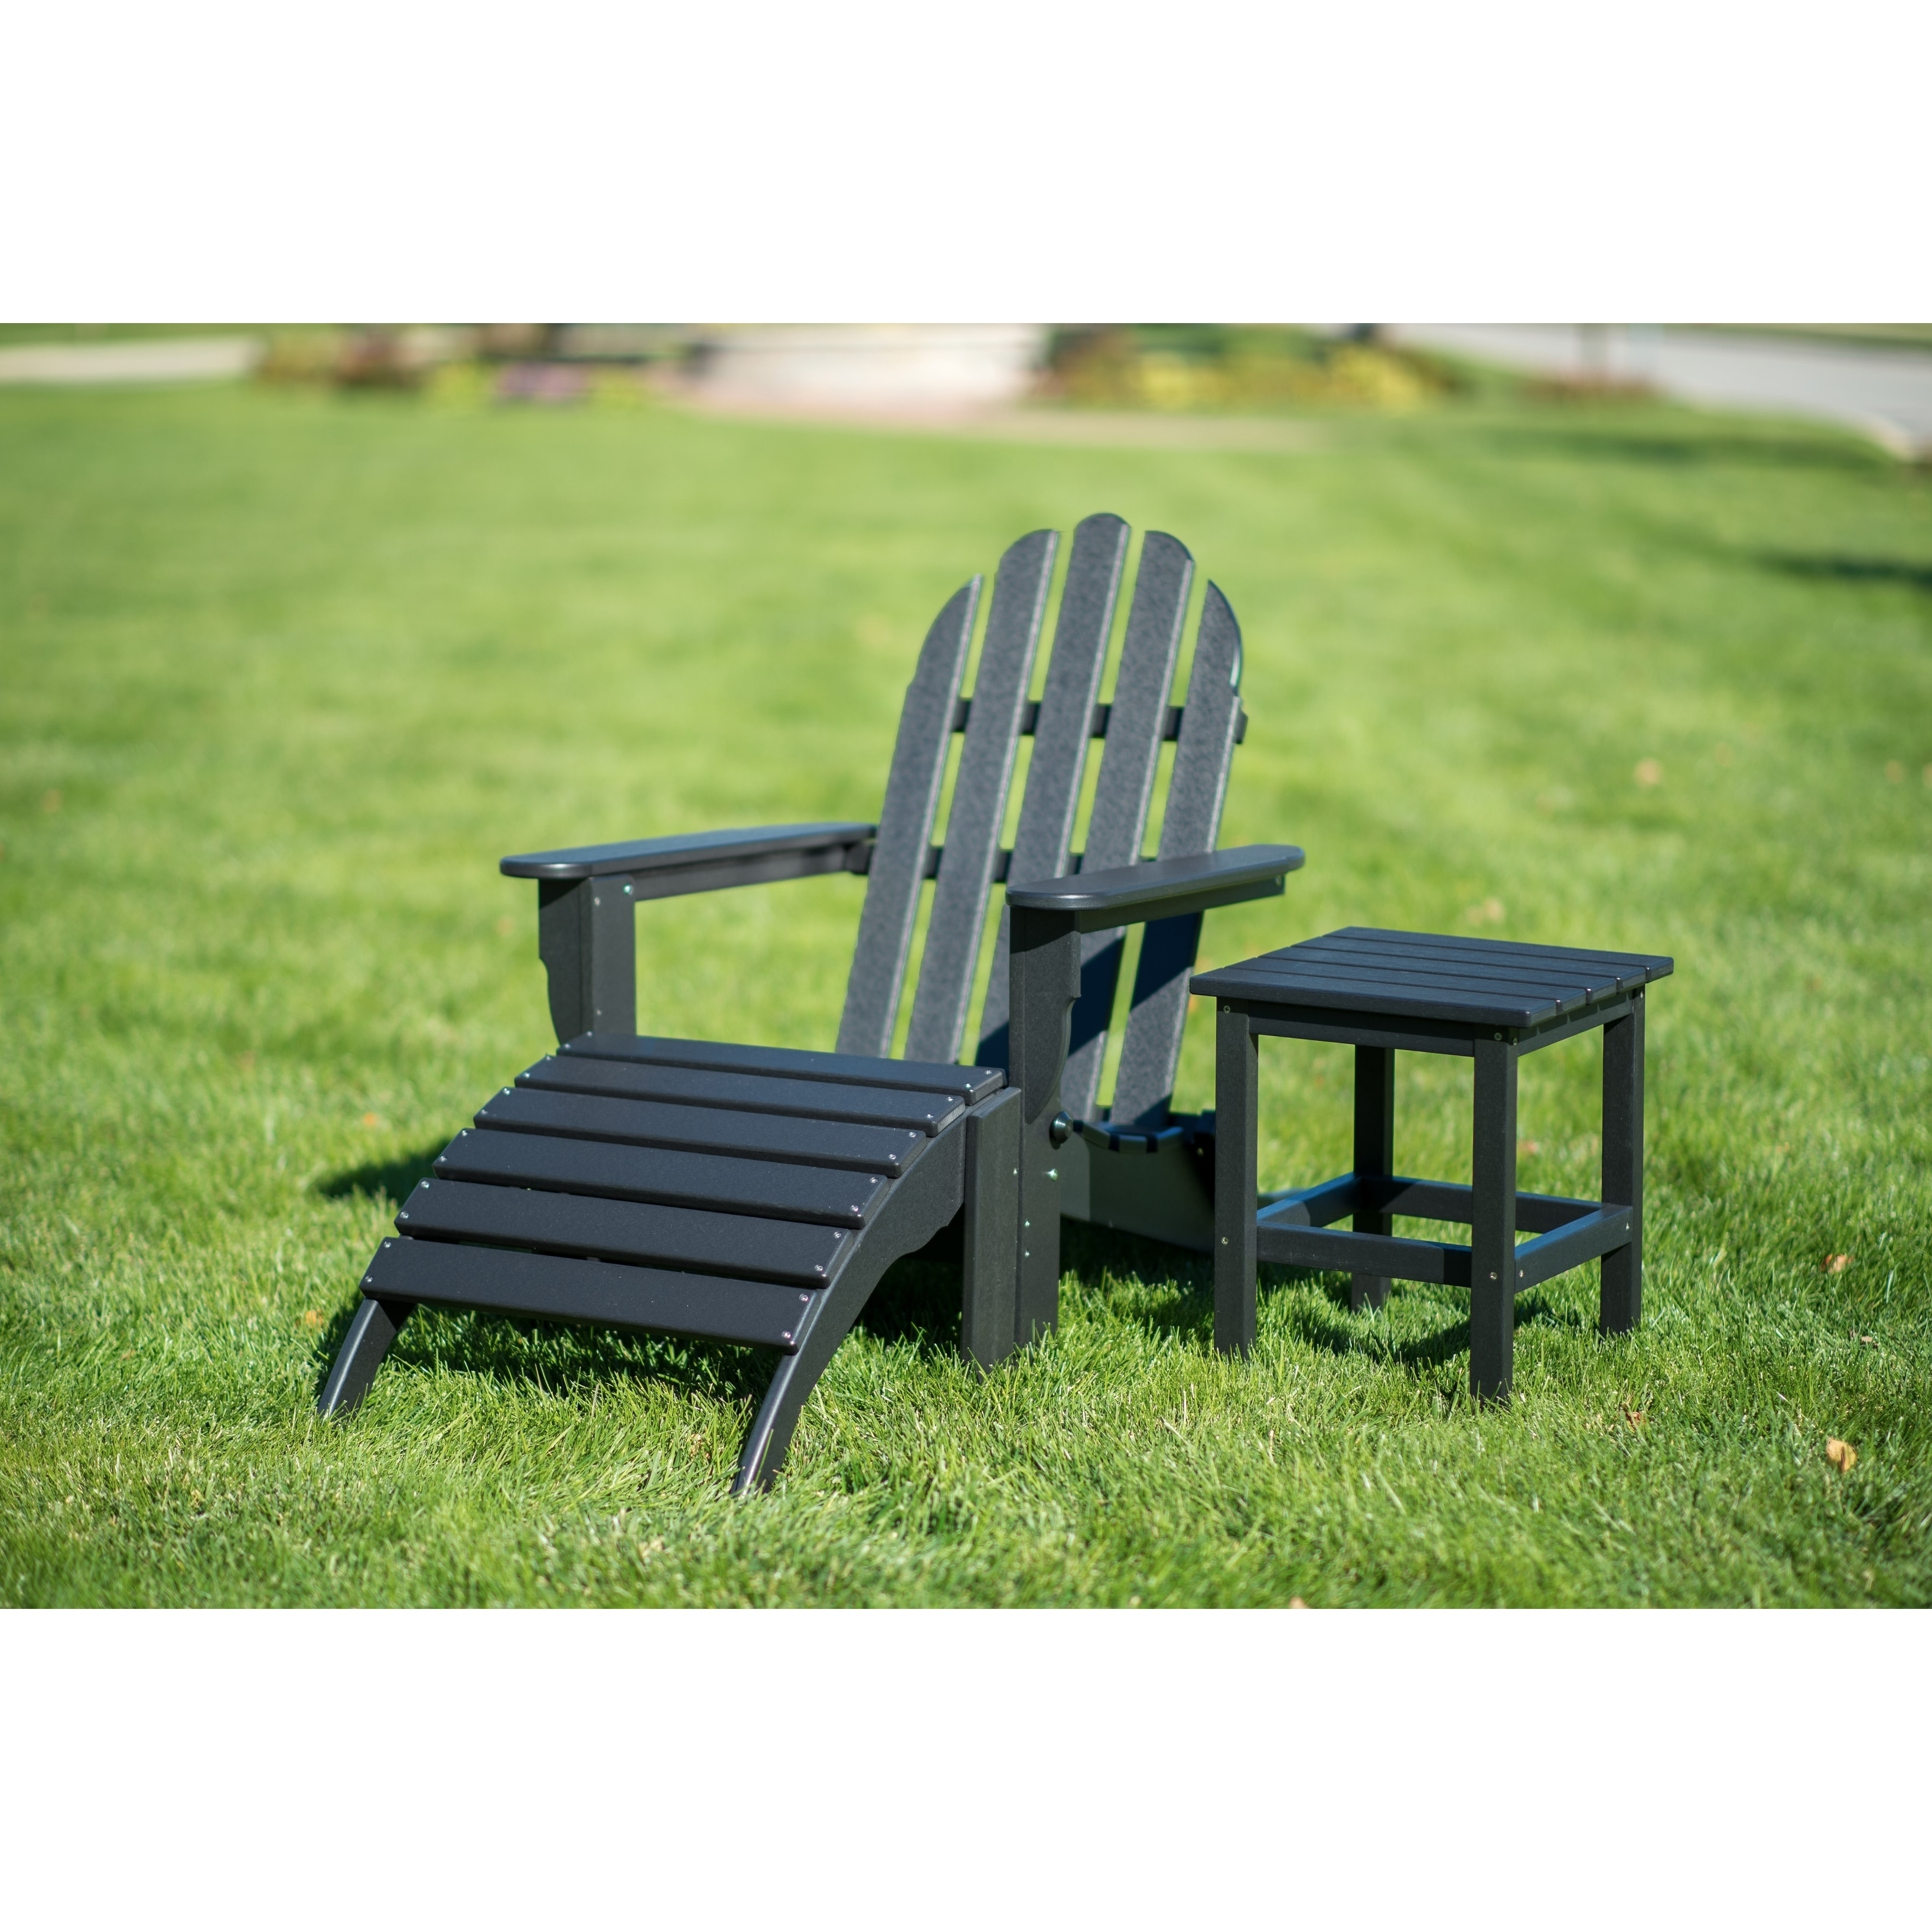 Adirondack Chair Set Details About Wyndtree 3 Piece Recycled Plastic Folding Adirondack Chair With Ottoman And Side